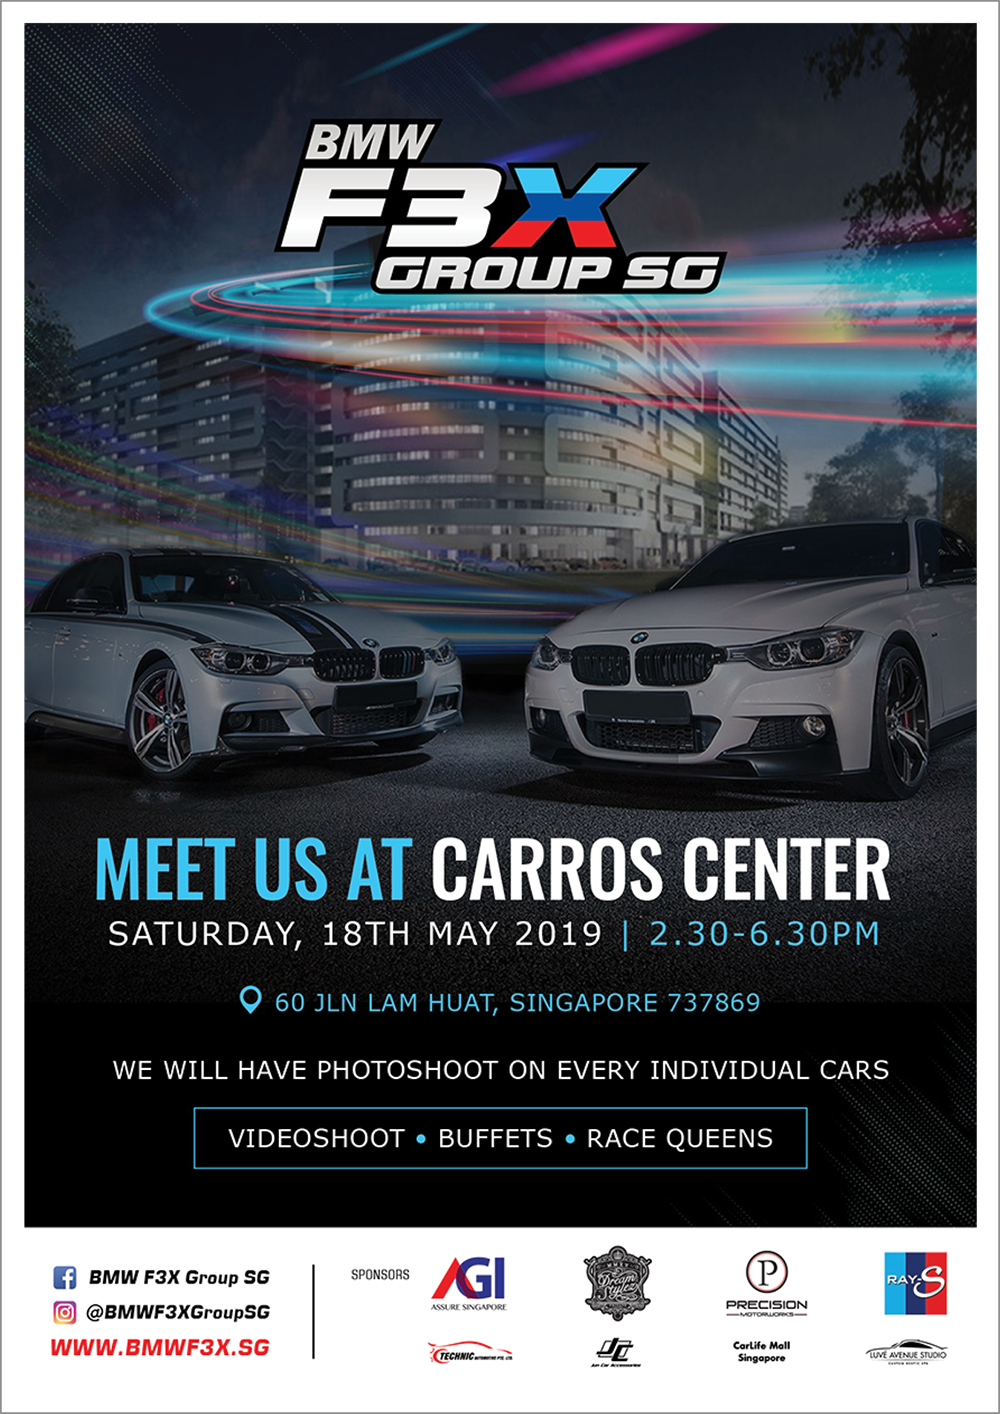 //bmwcarclub.sg/wp-content/uploads/2019/10/BMW-F3X-Carros-Center-Events.png